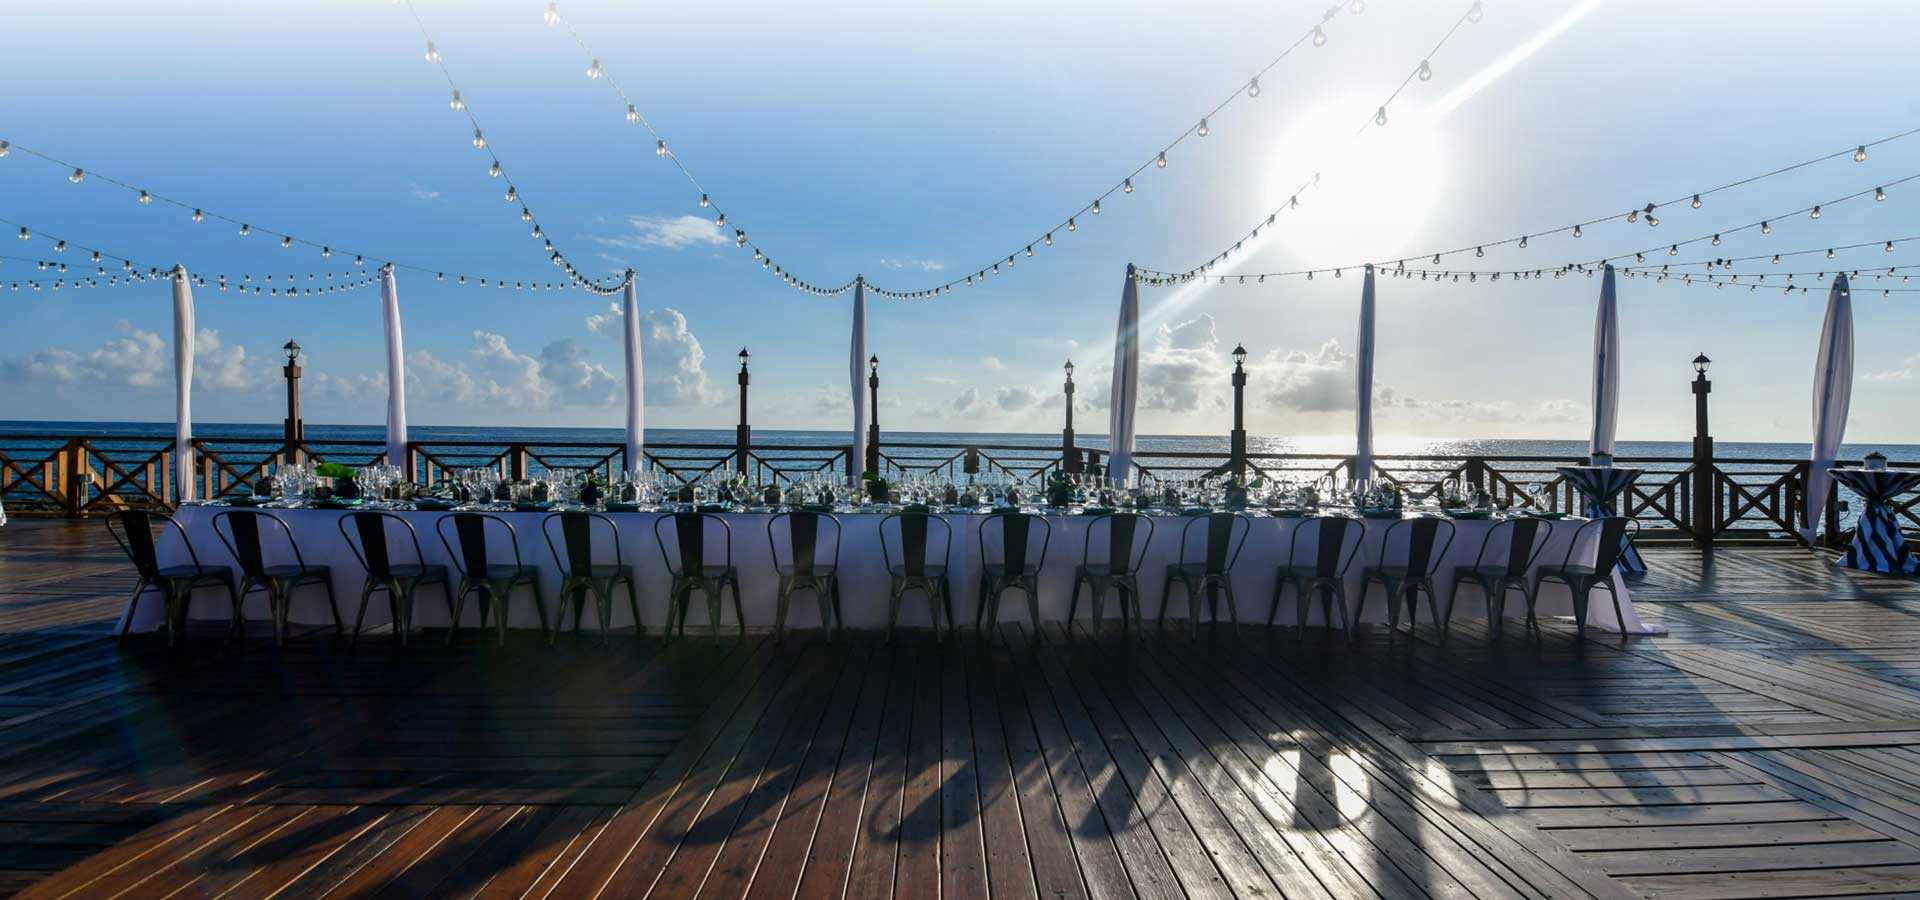 Cayman's Premium Waterfront wedding venue